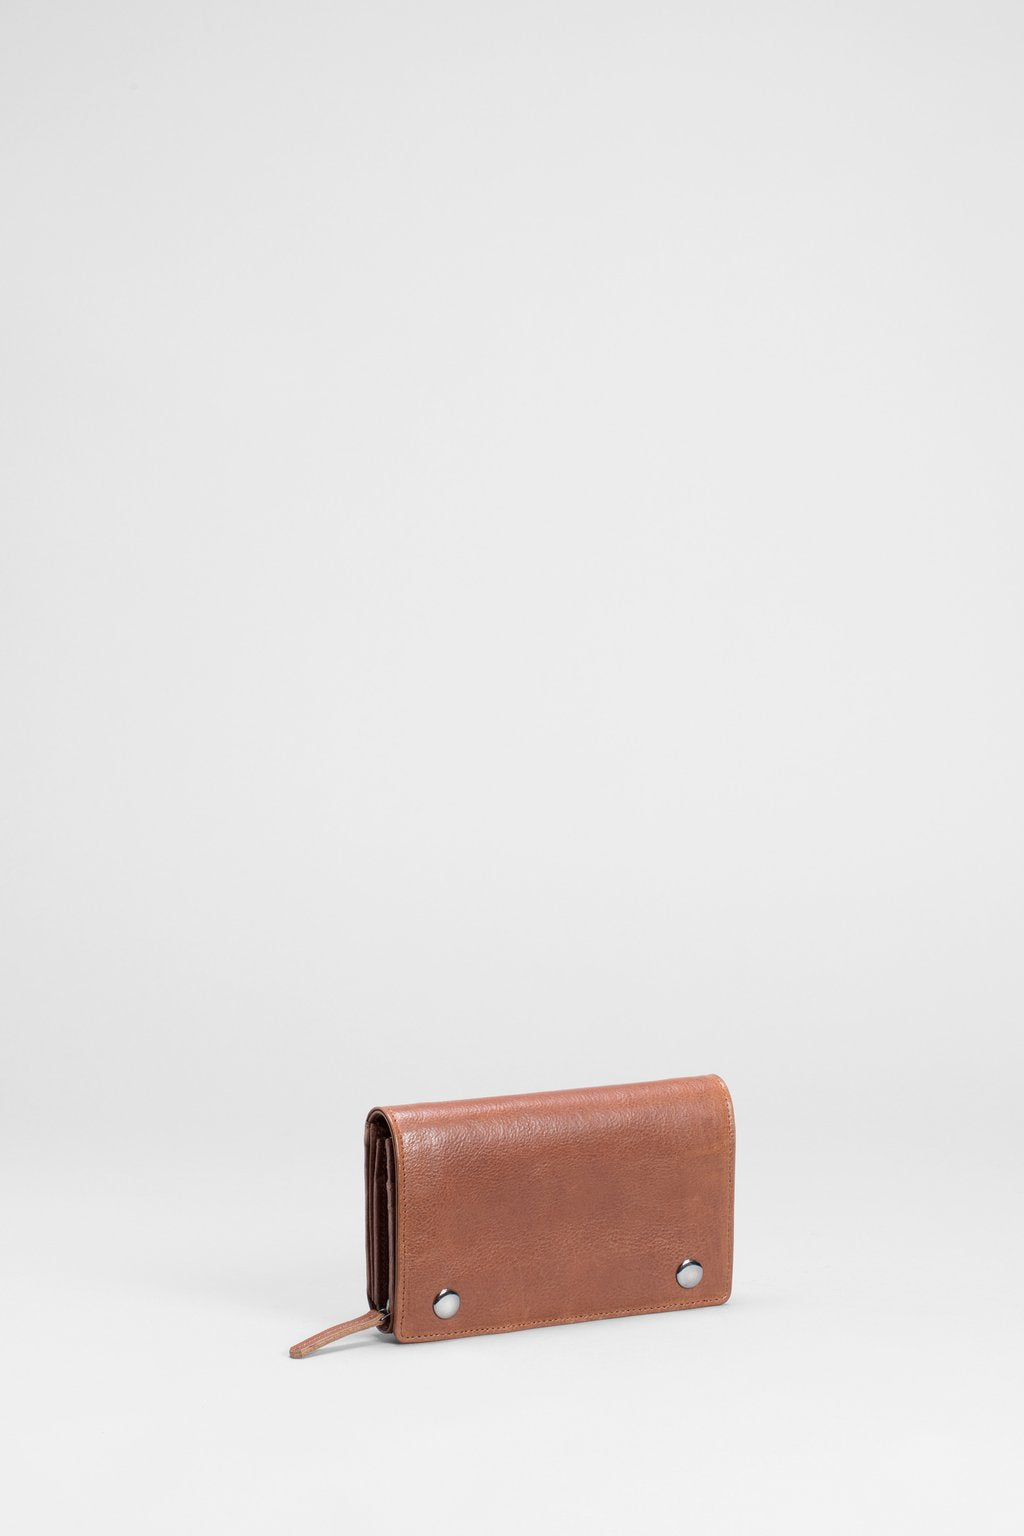 ELK The Label - Edda Wallet online at PAYA boutique